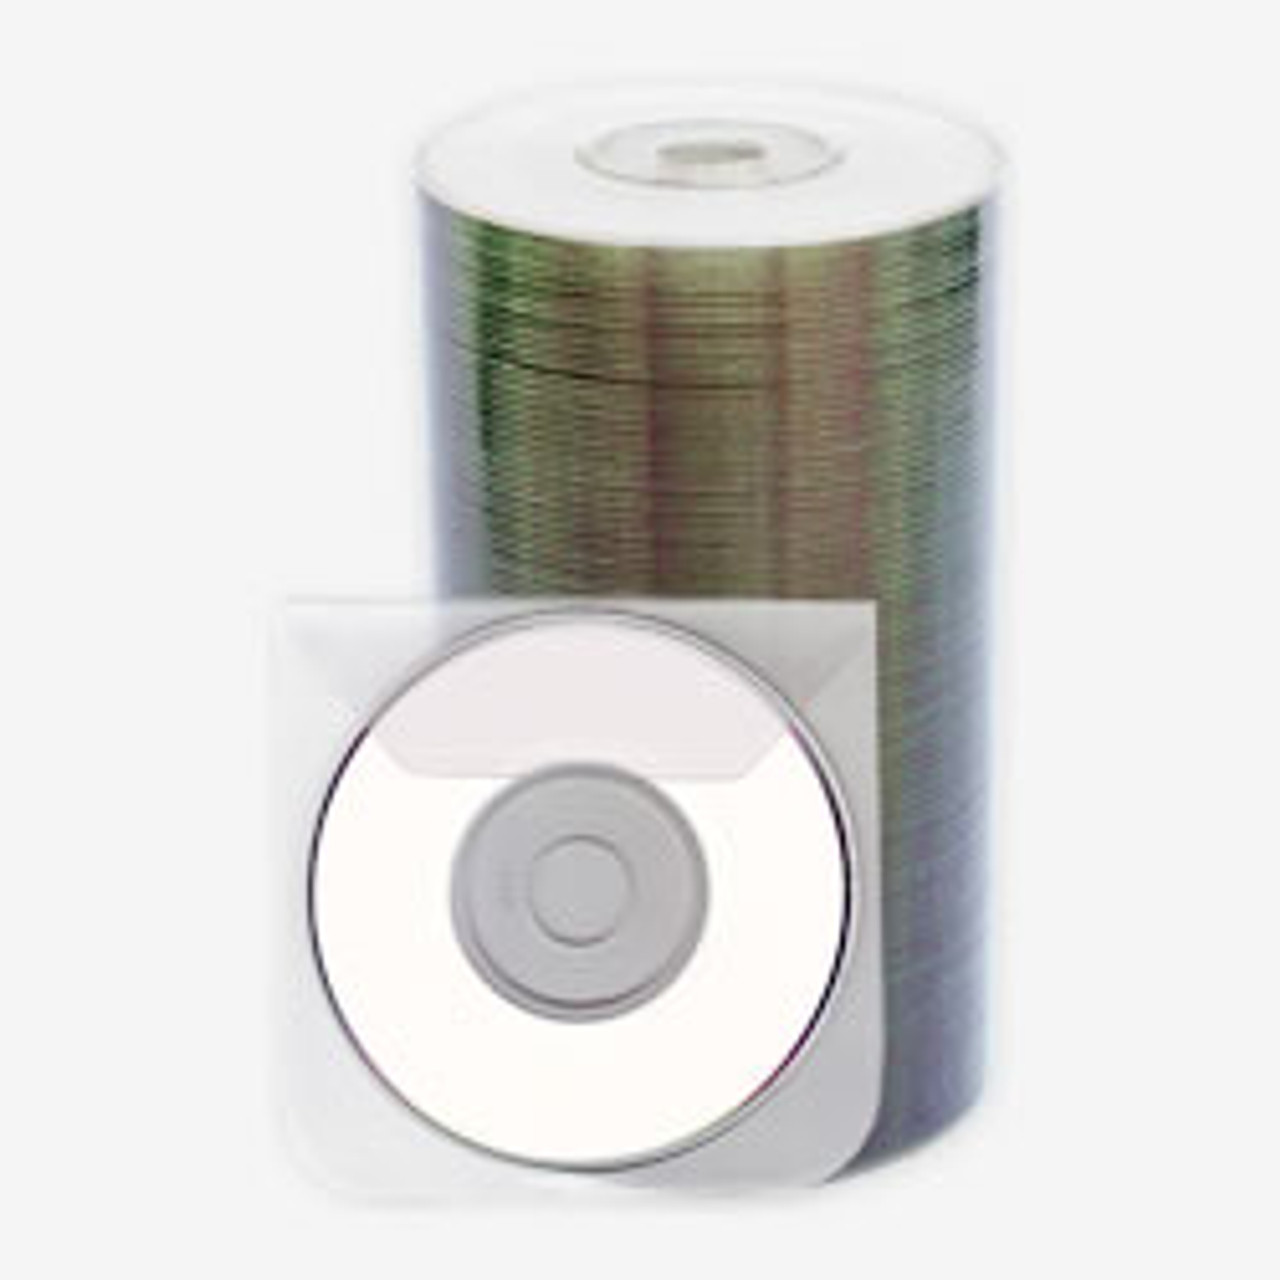 image about Printable Dvd Disc referred to as Intact Mini DVD-R 1.4GB Whitetop Printable 50personal computers Spindle with Sleeves